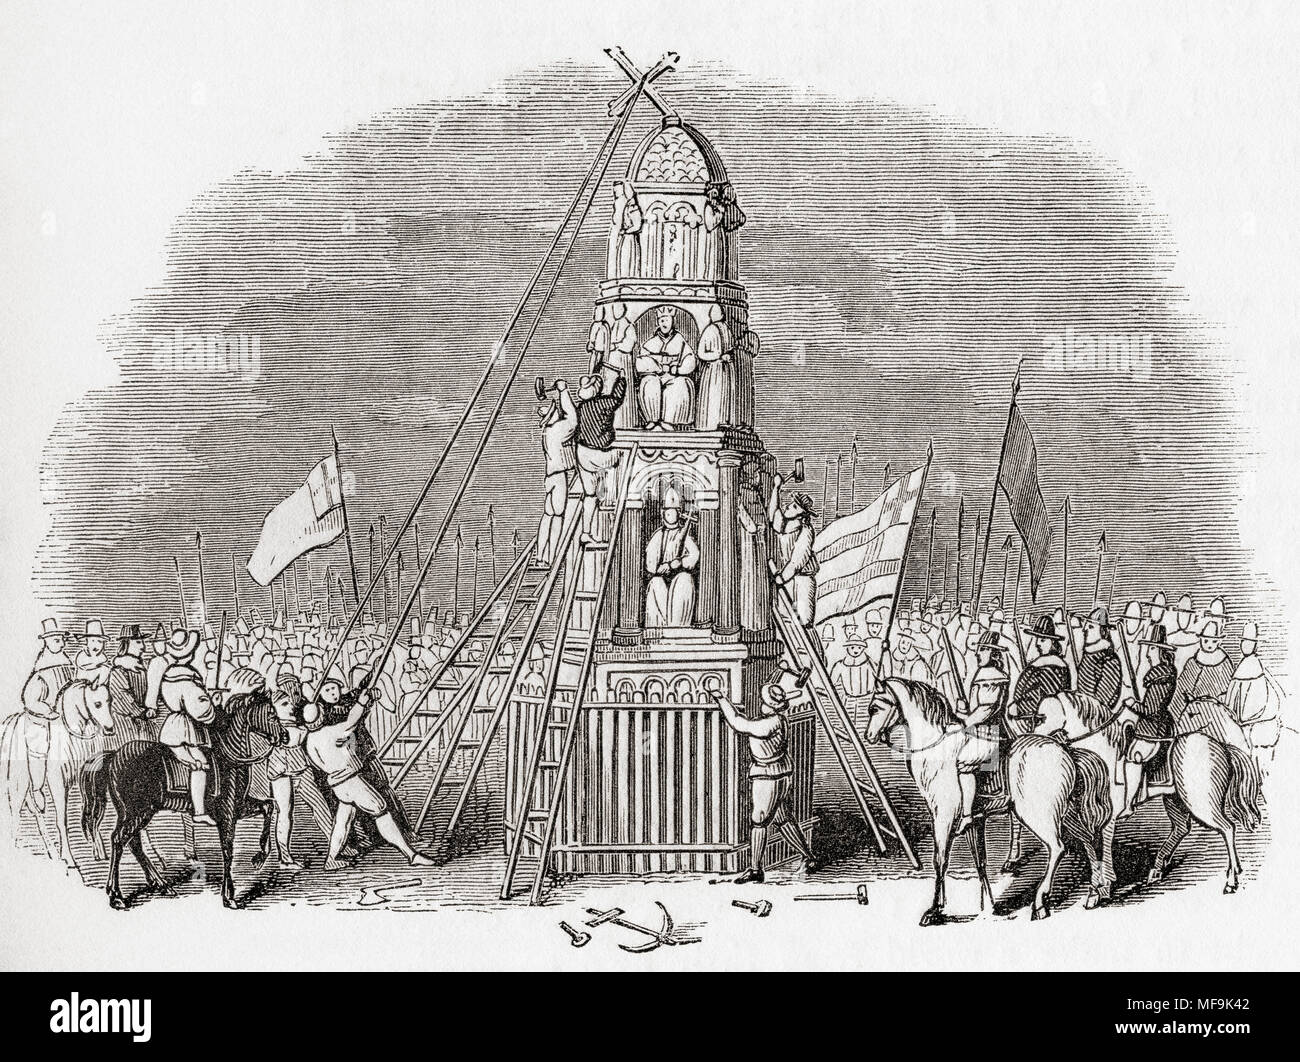 Puritans destroying the Cheapside Cross aka Eleanor Cross, London, England  in 1643. From Old England: A Pictorial Museum, published 1847.